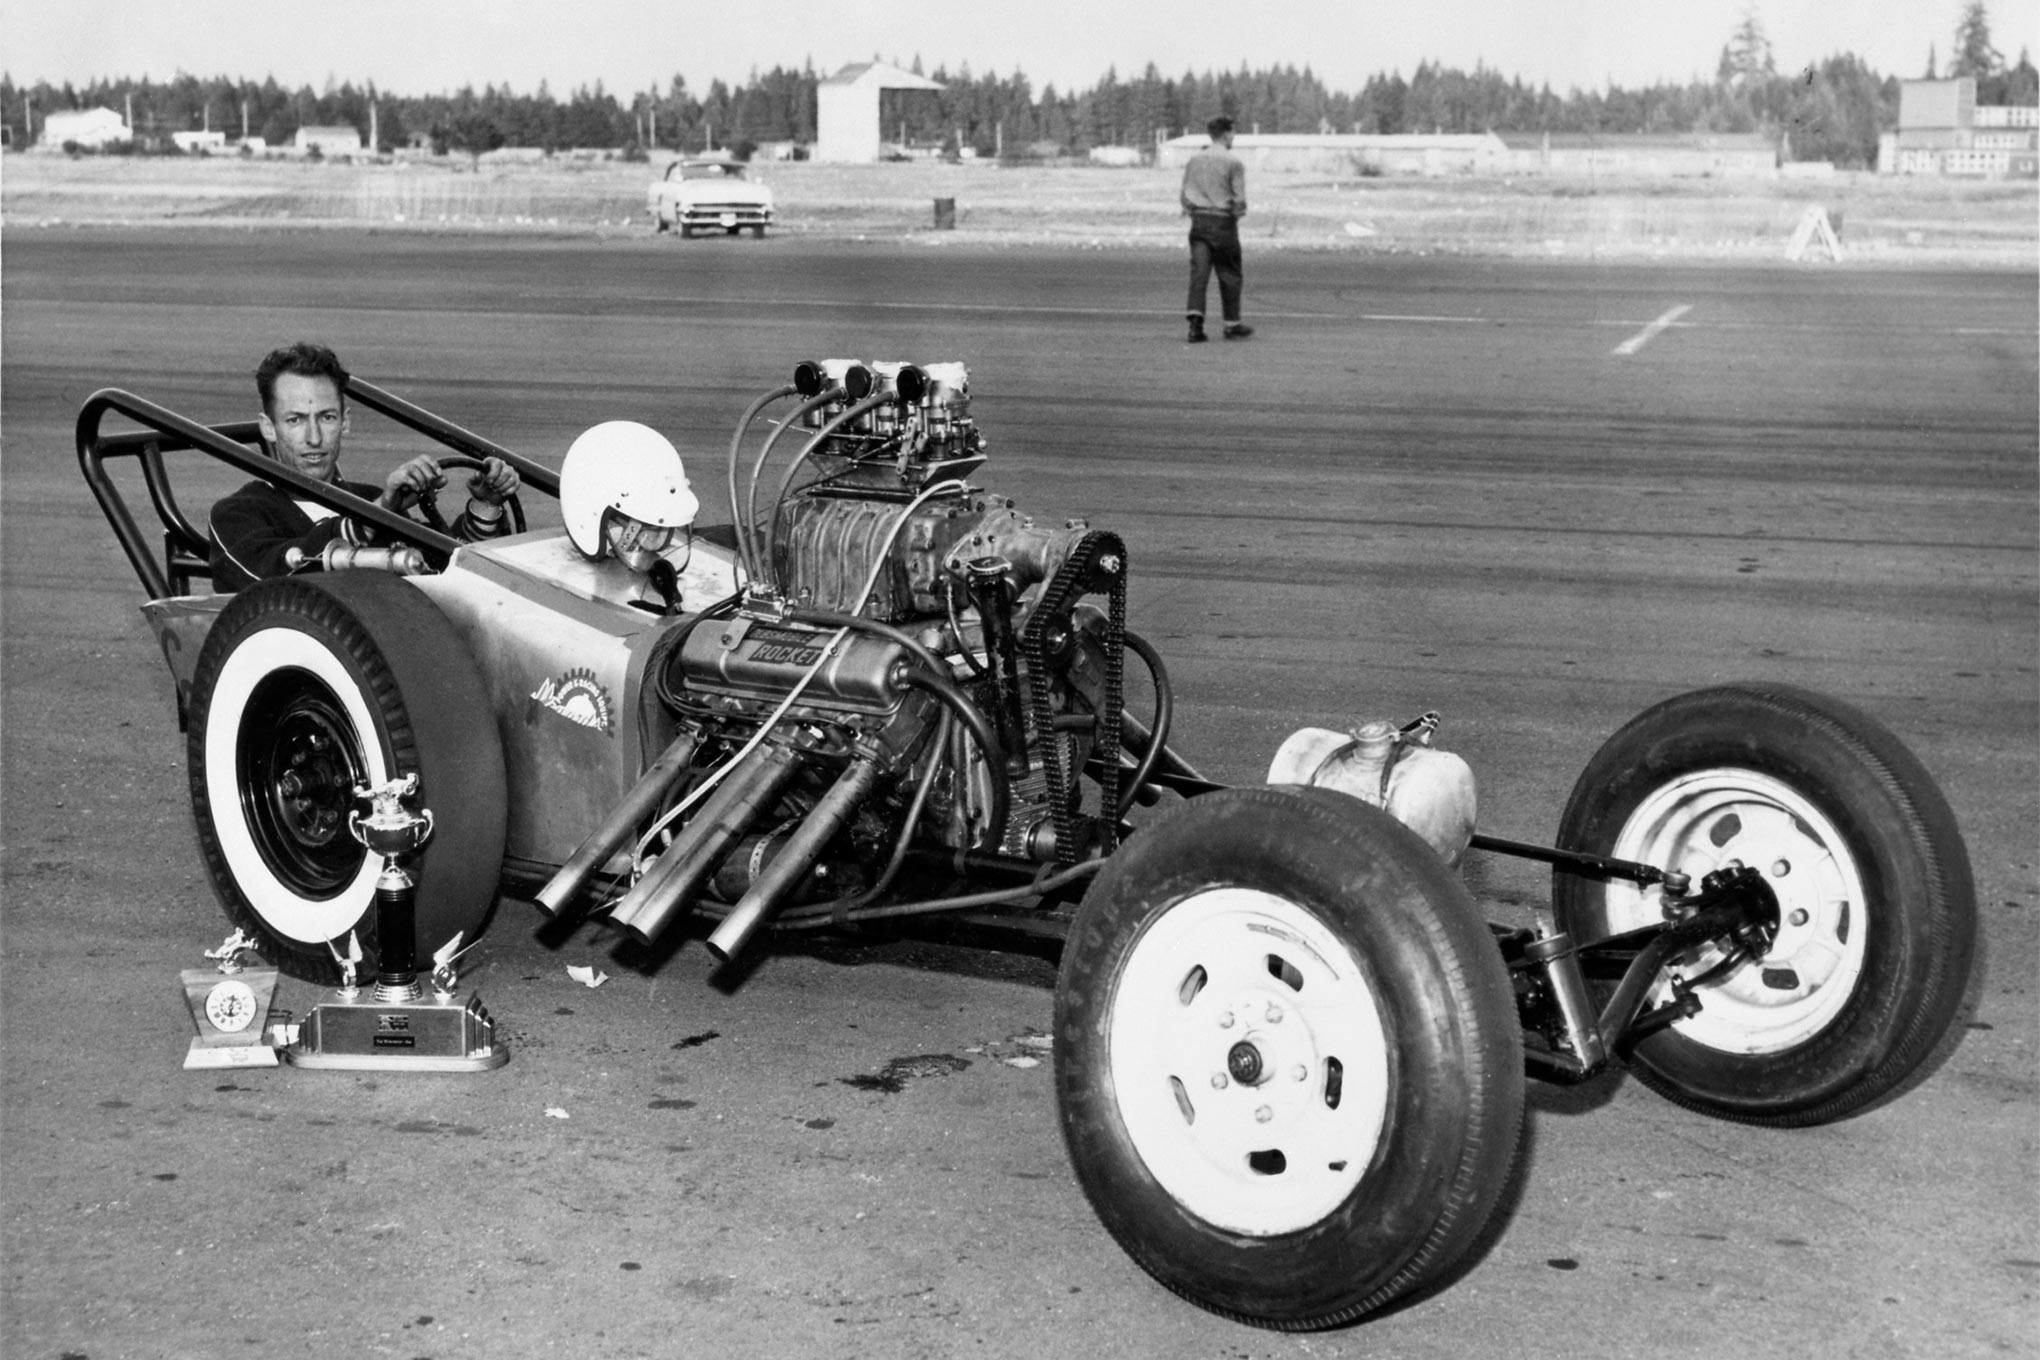 Scotty teamed with Orville Moe up in Spokane. They built this Chassis Research car and powered it with a basically stock Olds. Even the Holley 2110 carburetors still have their choke elements.